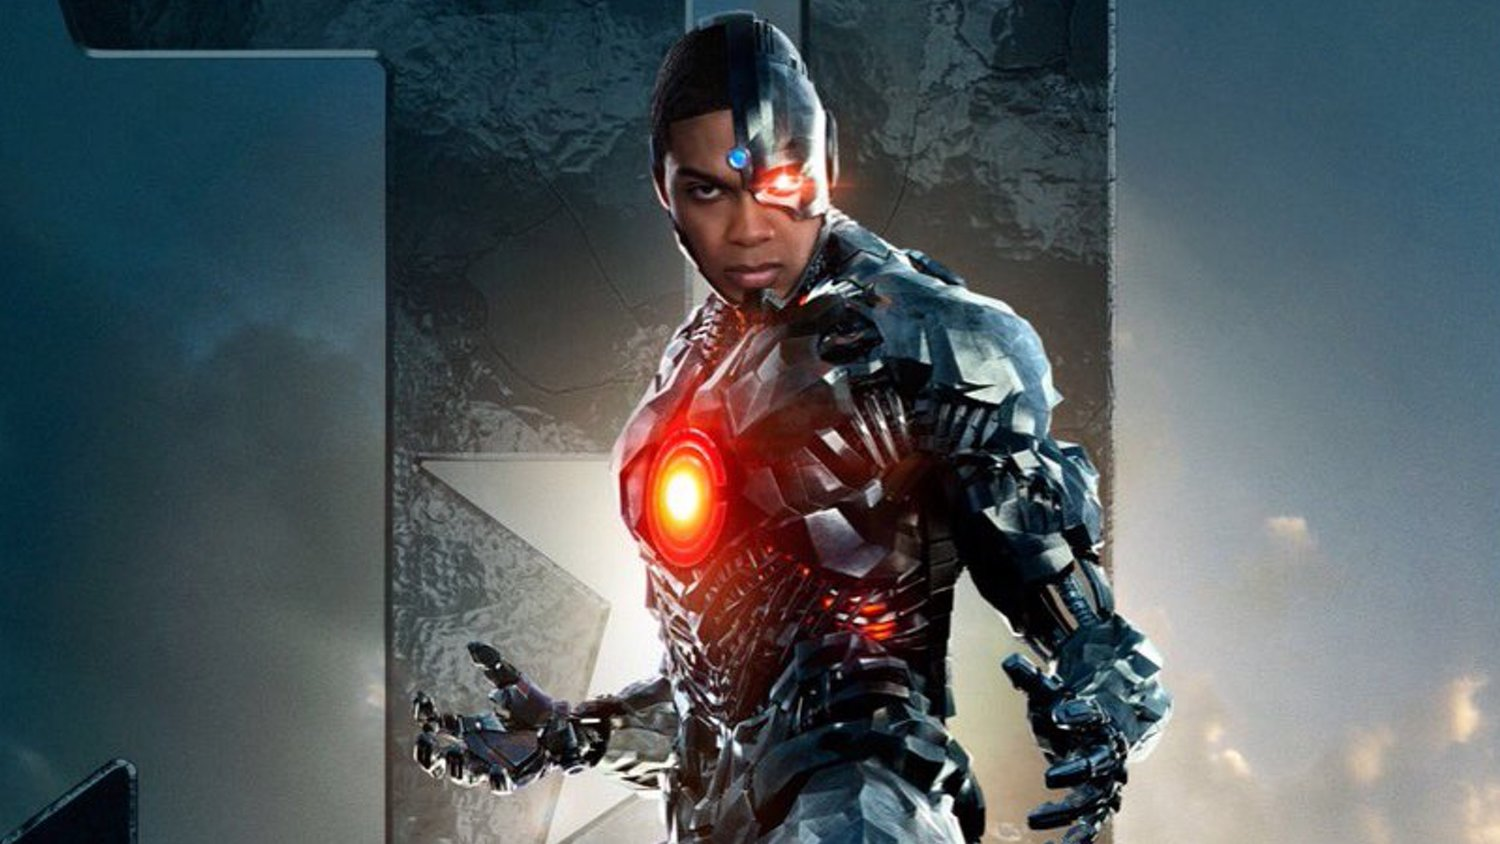 Watch Cyborg in Action in New JUSTICE LEAGUE Promo Spot and Poster